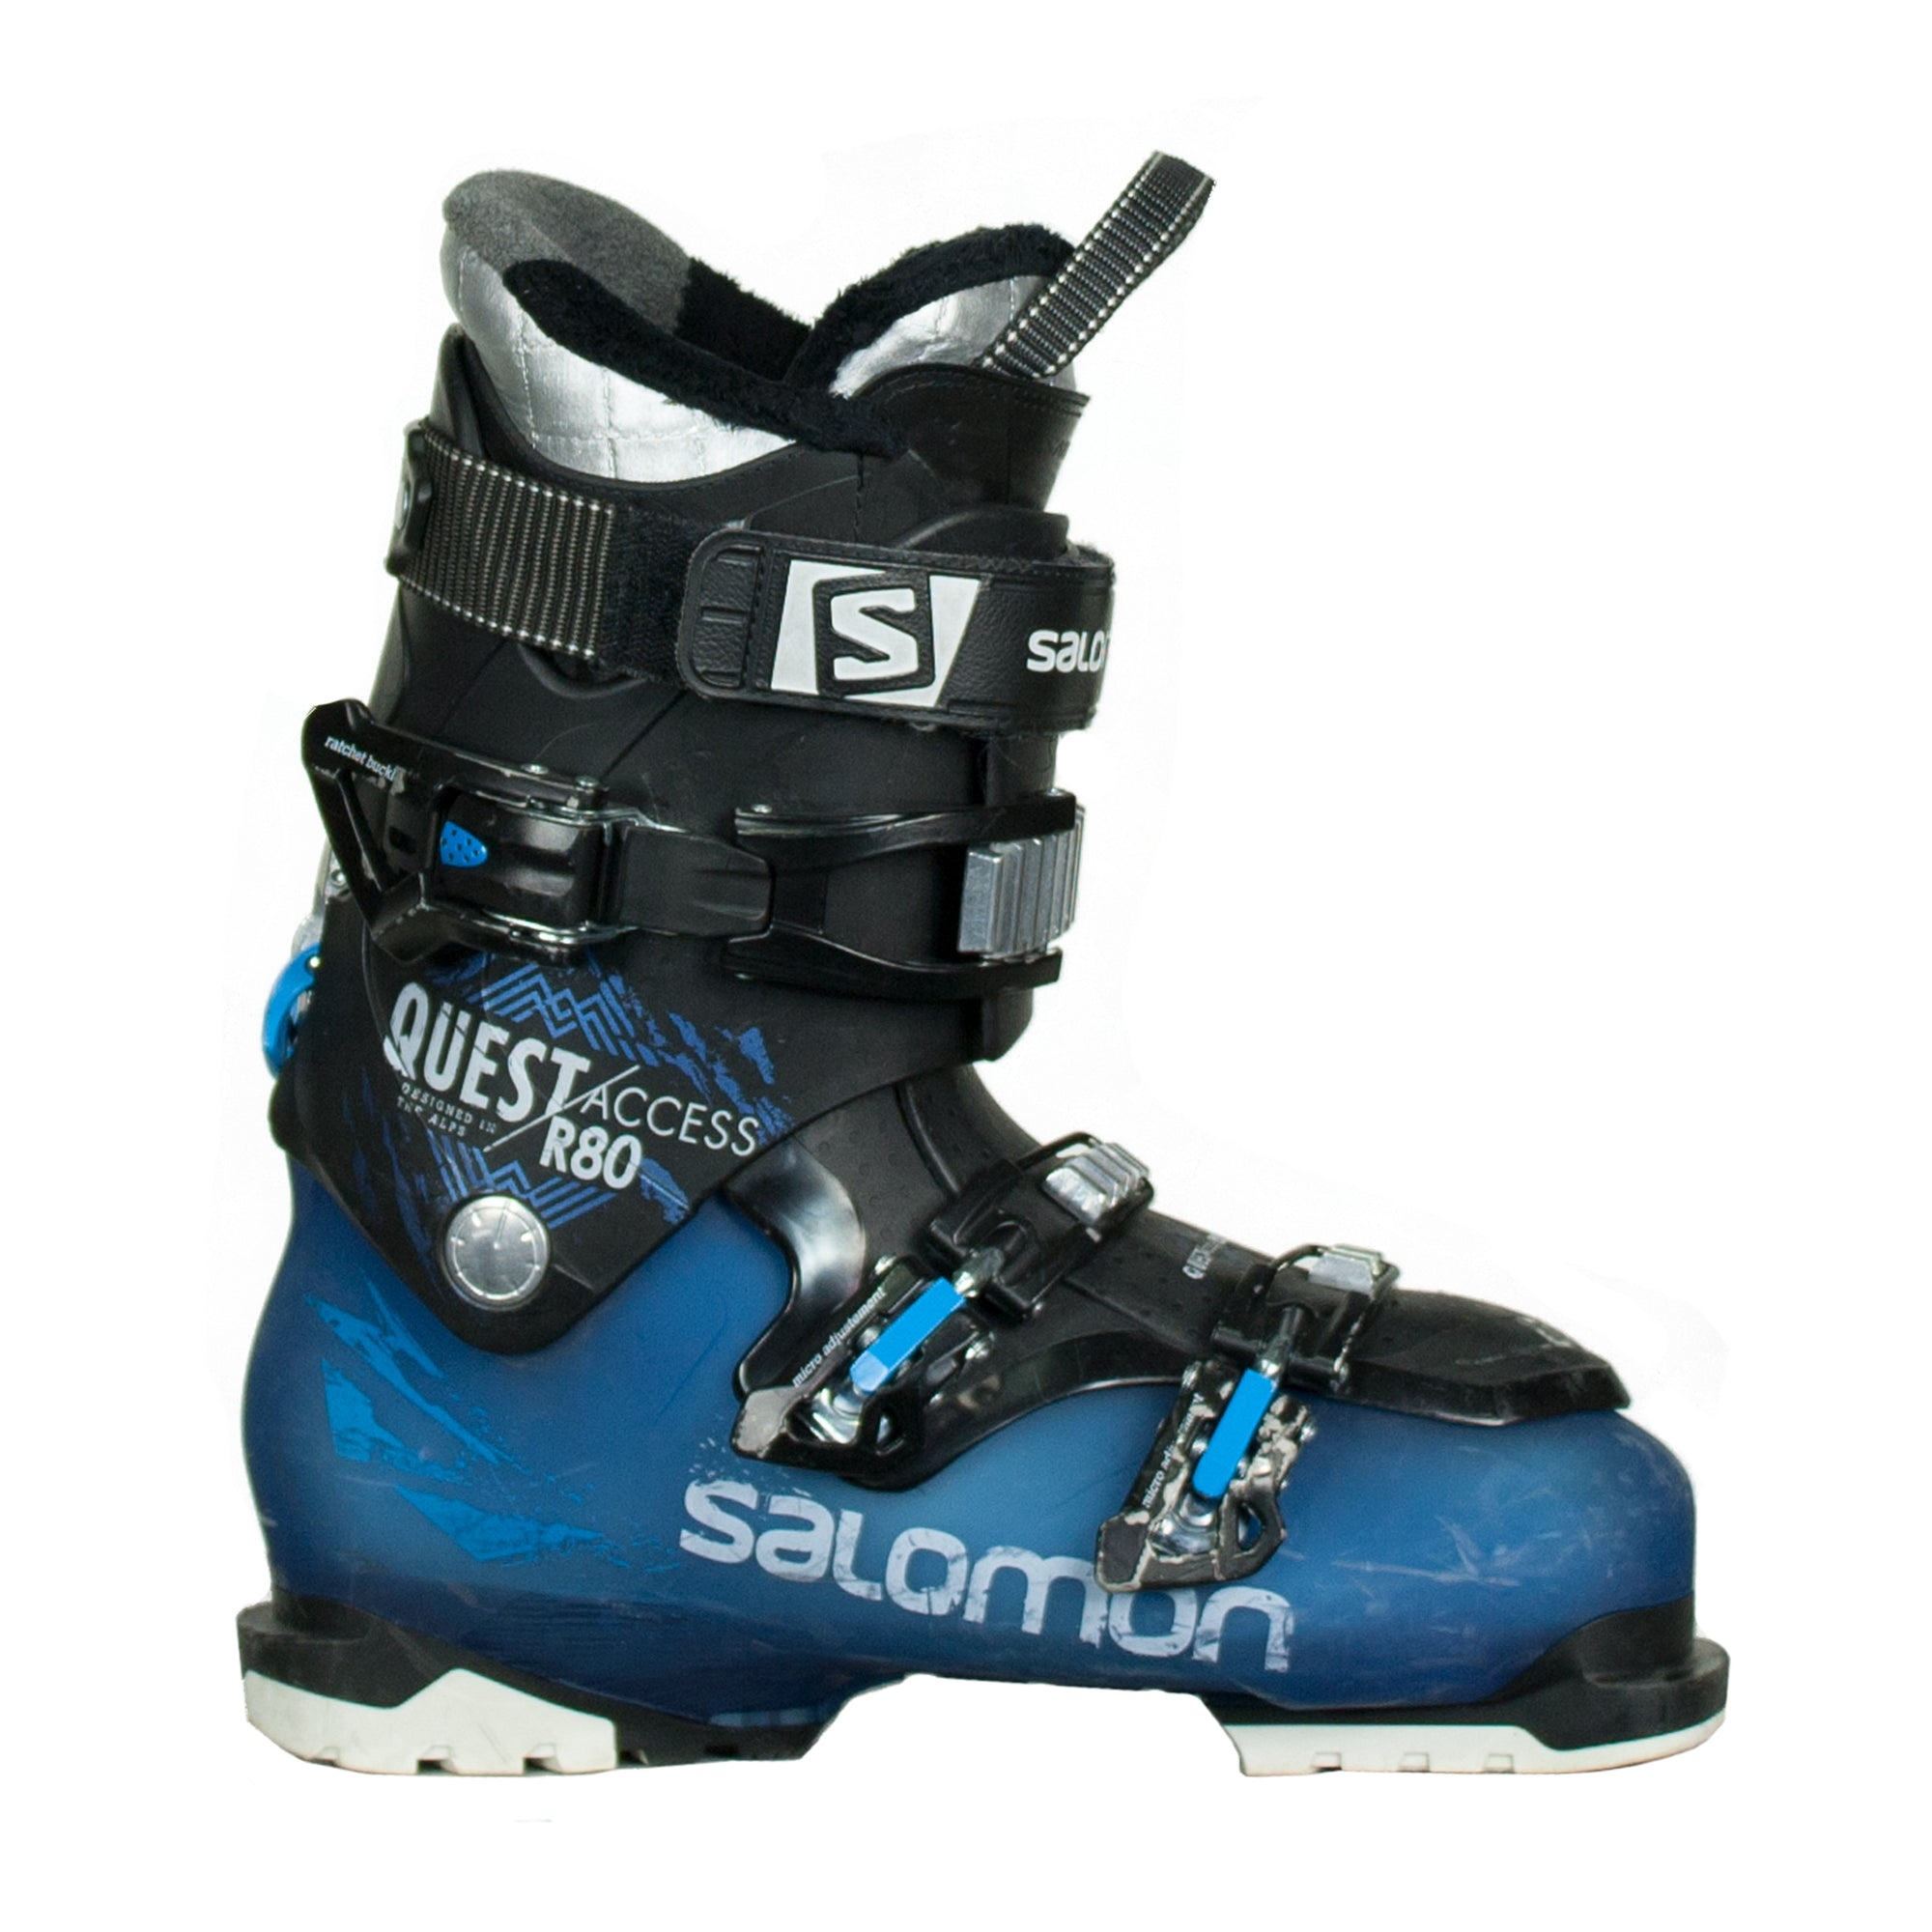 buy cheap order where can i buy Used Salomon Quest Access R80 Ski Boots